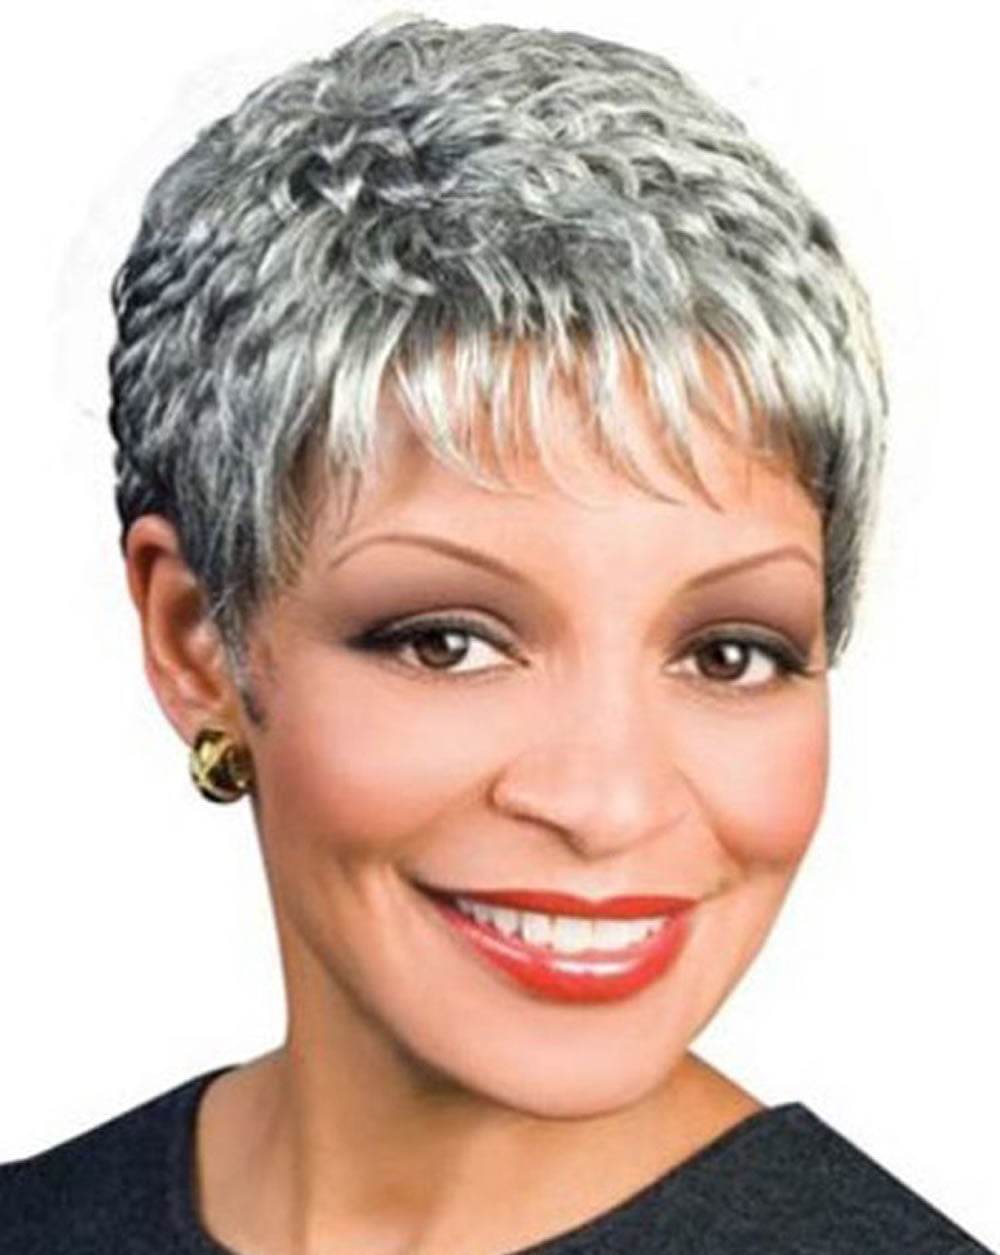 30 Easy Short Hairstyles for Older Women - You Should Try! - Page 3 - HAIRSTYLES